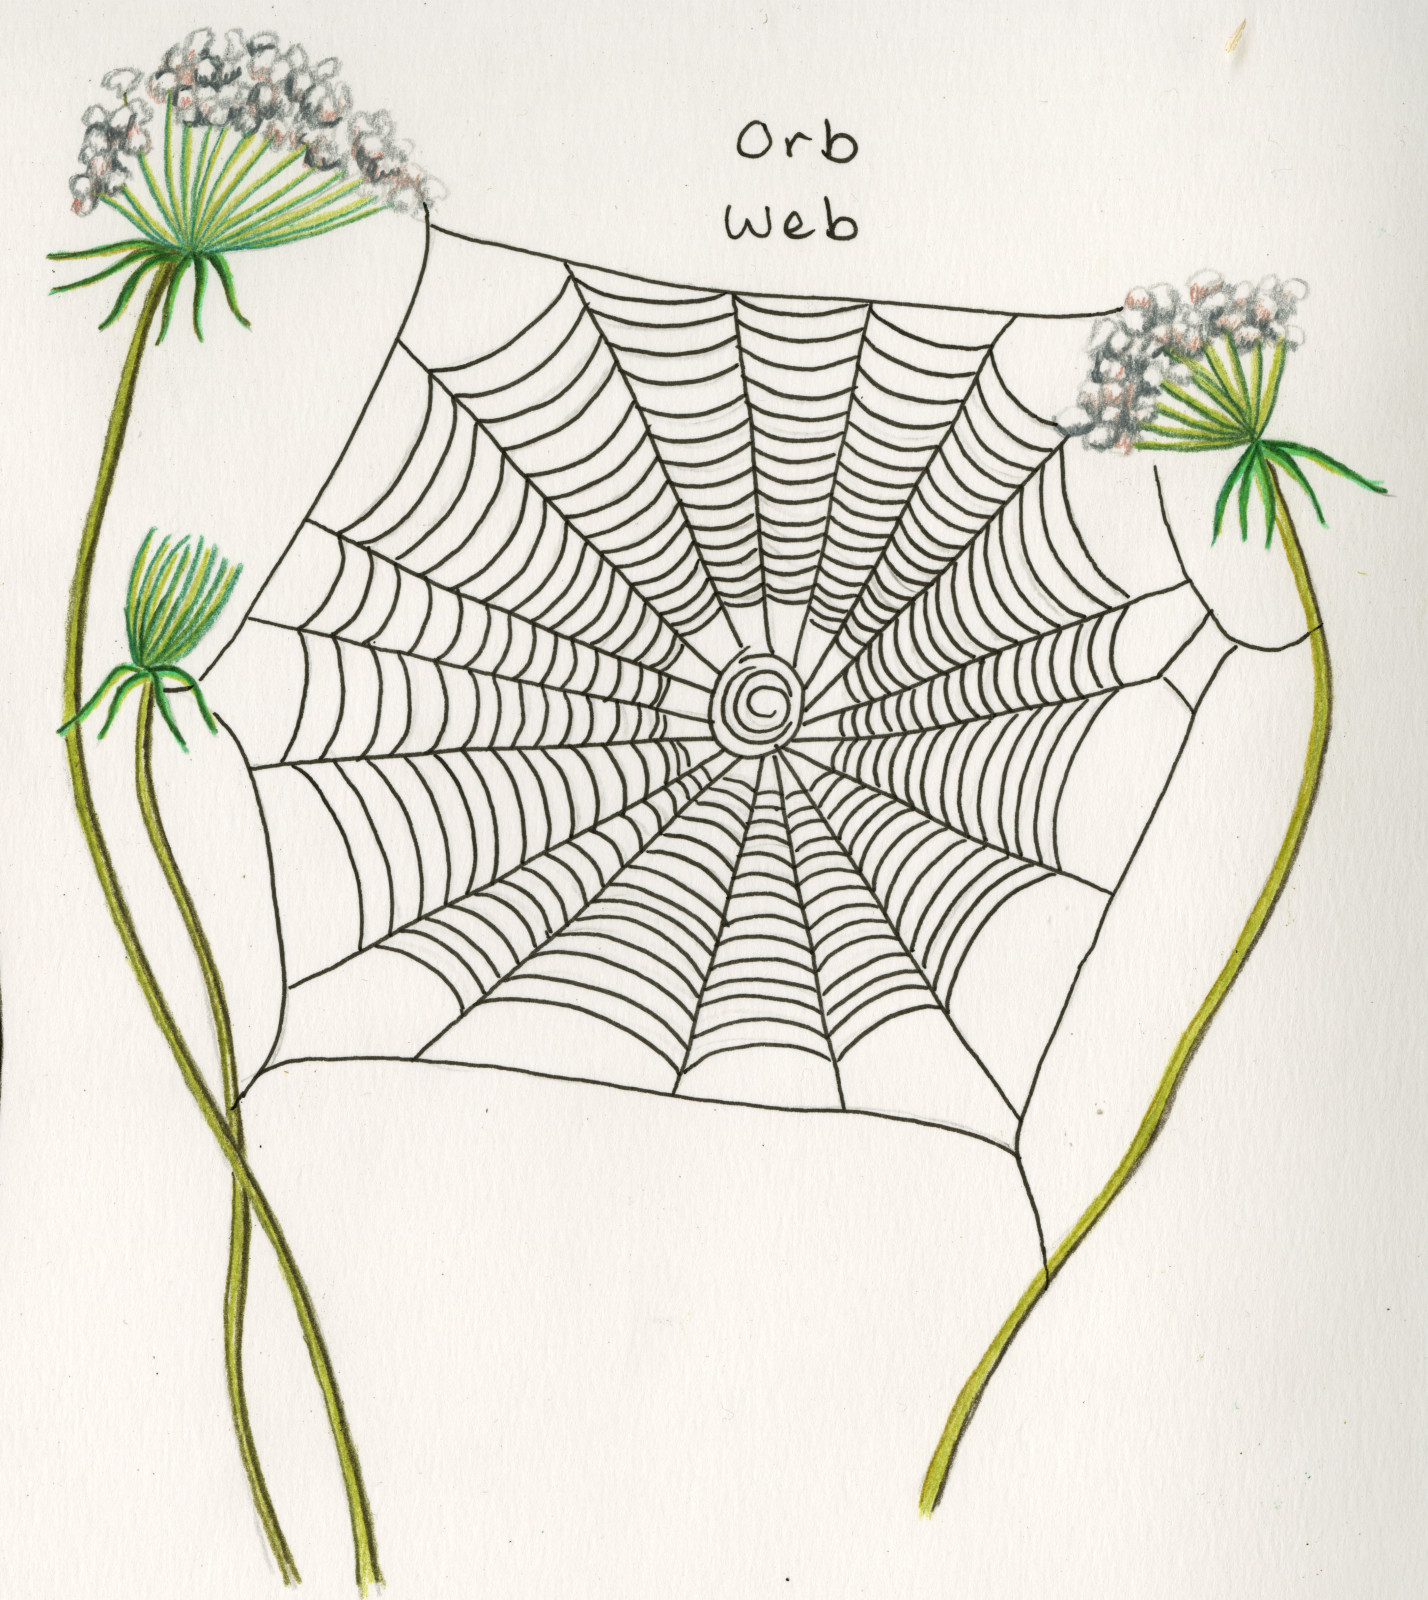 Bay Nature Magazine How To Recognize Spiders By Their Webs